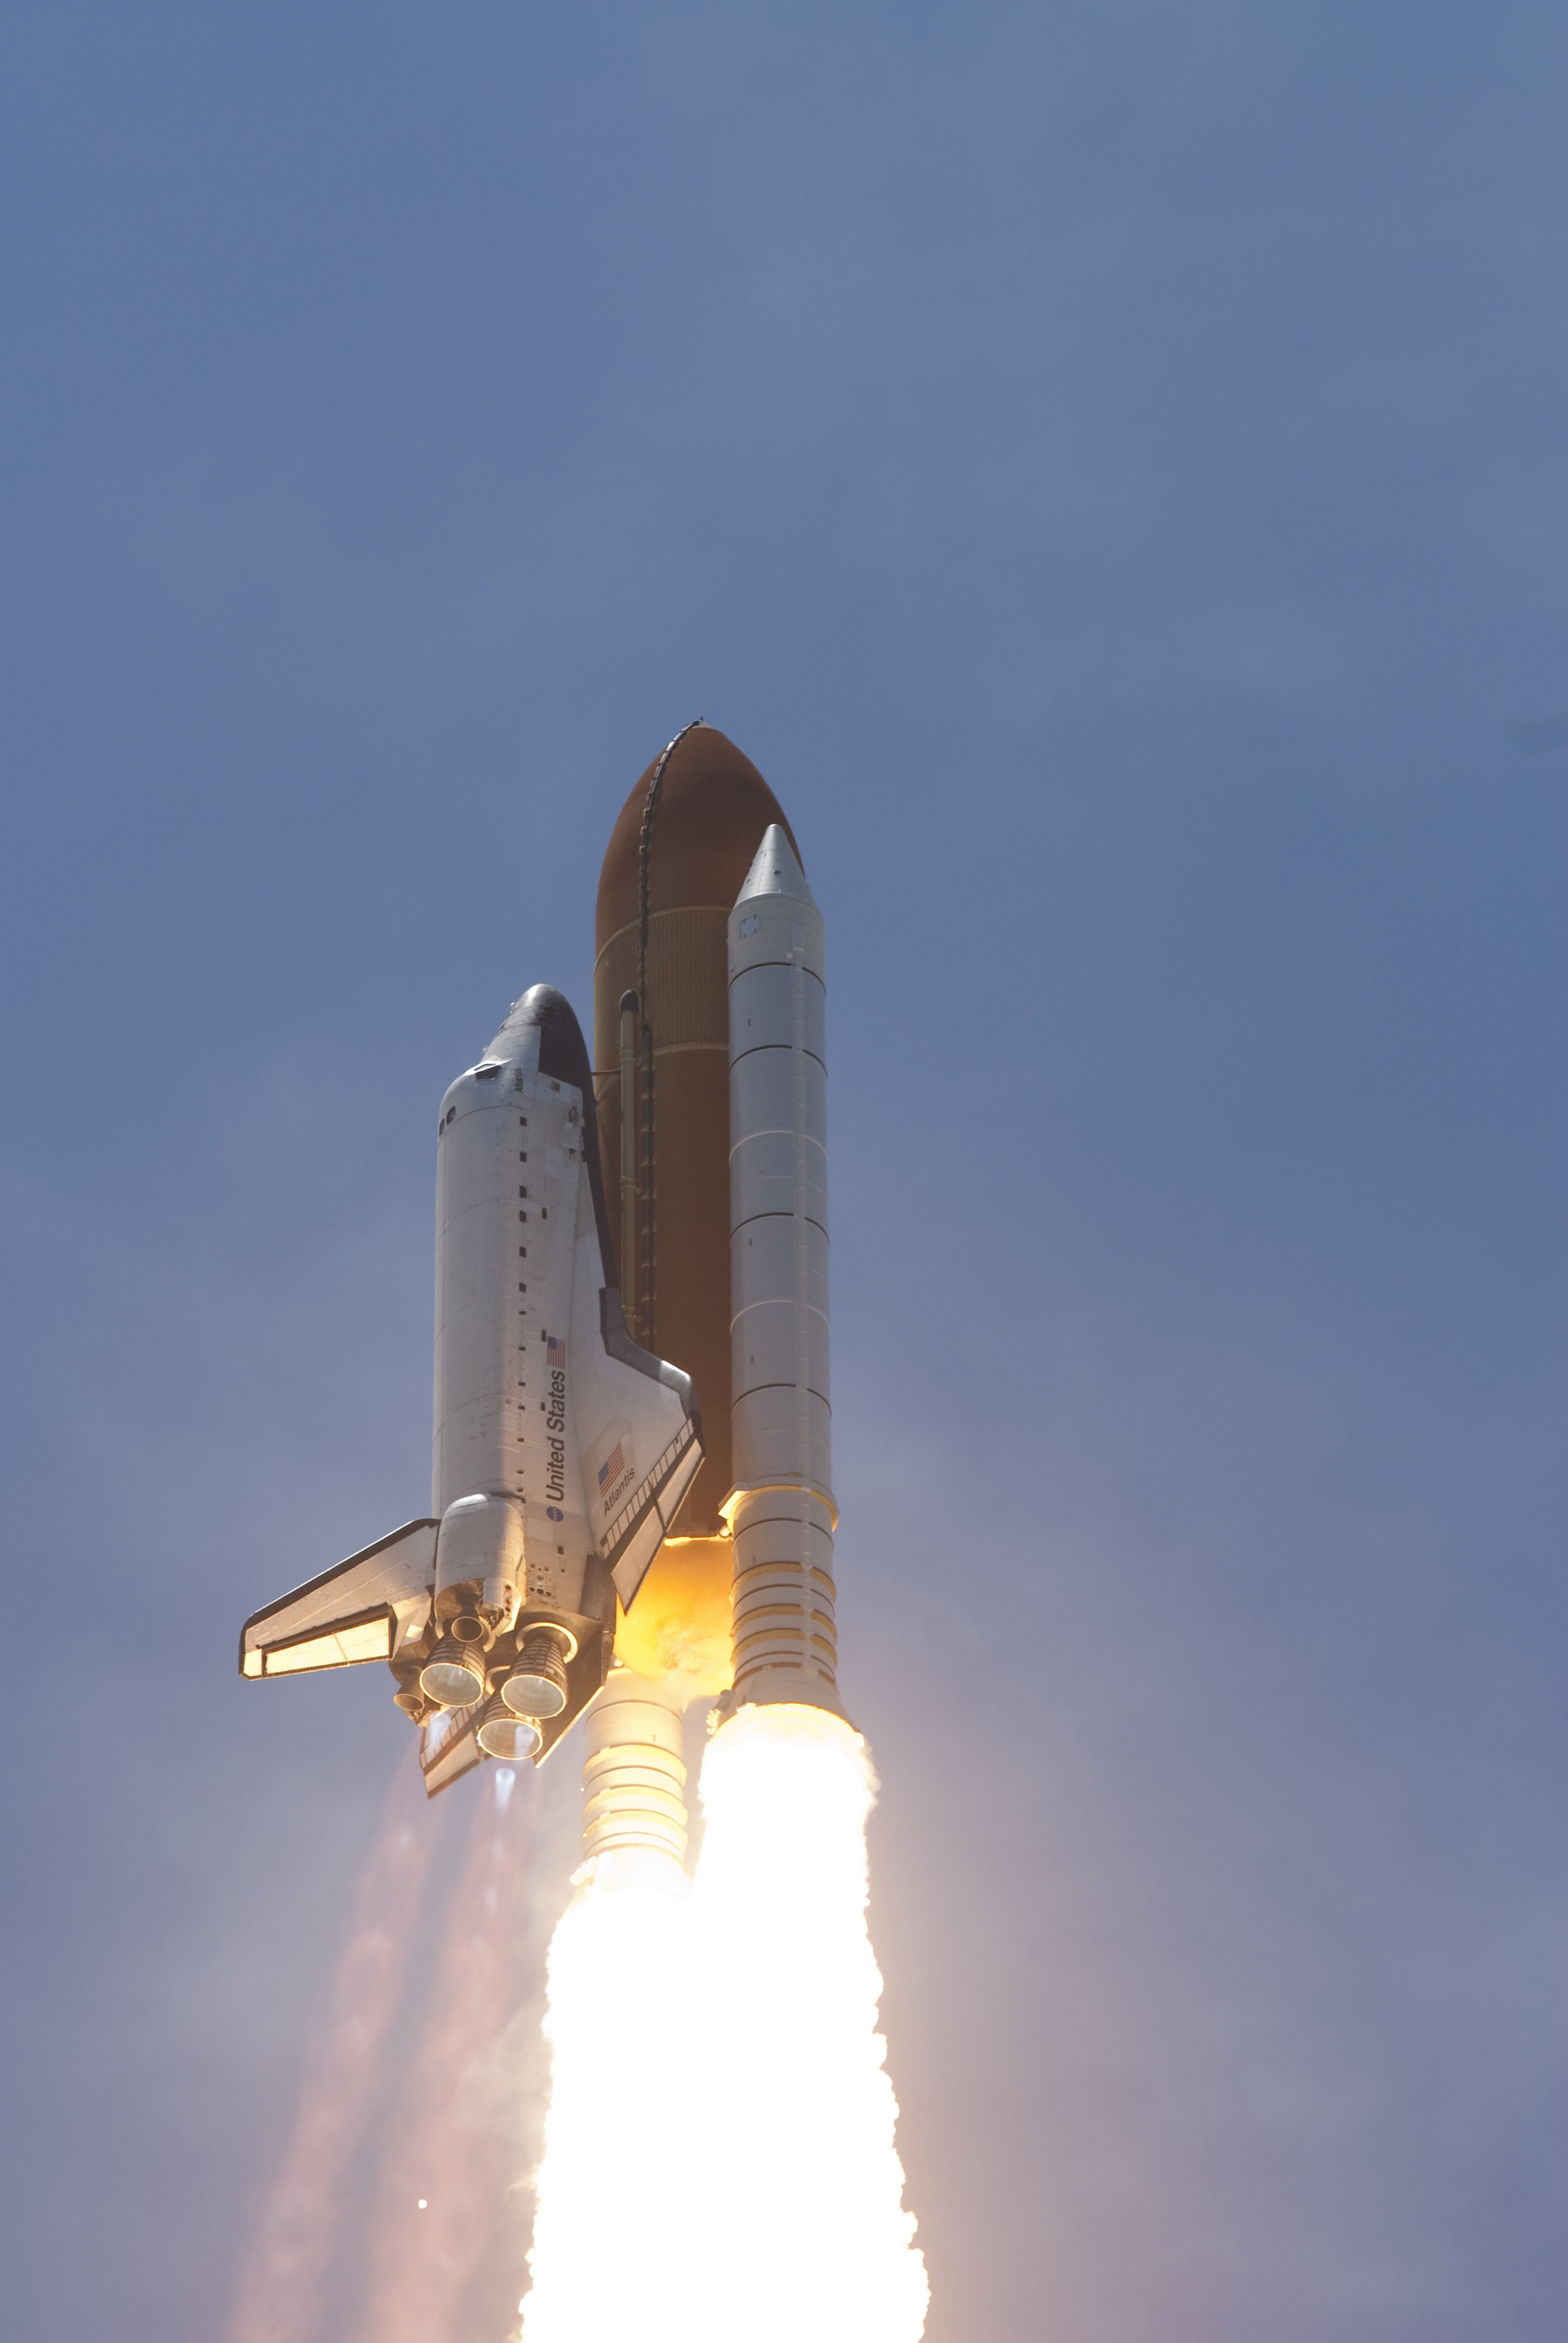 space shuttle engines firing - photo #5